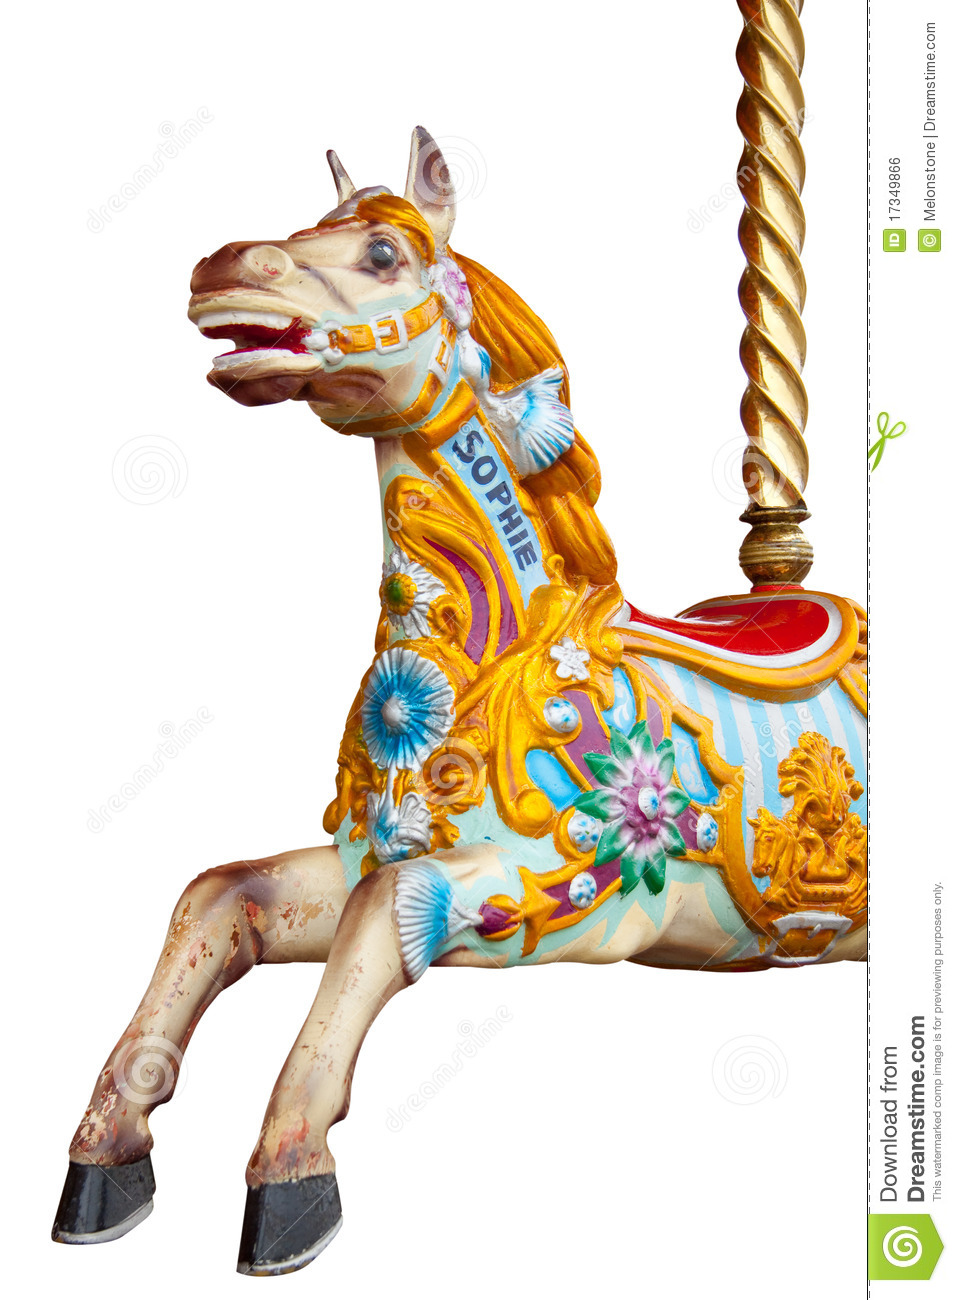 Go To Www Bing Comhella Www Bing Com: Isolated Merry-go-round Horse Royalty Free Stock Image